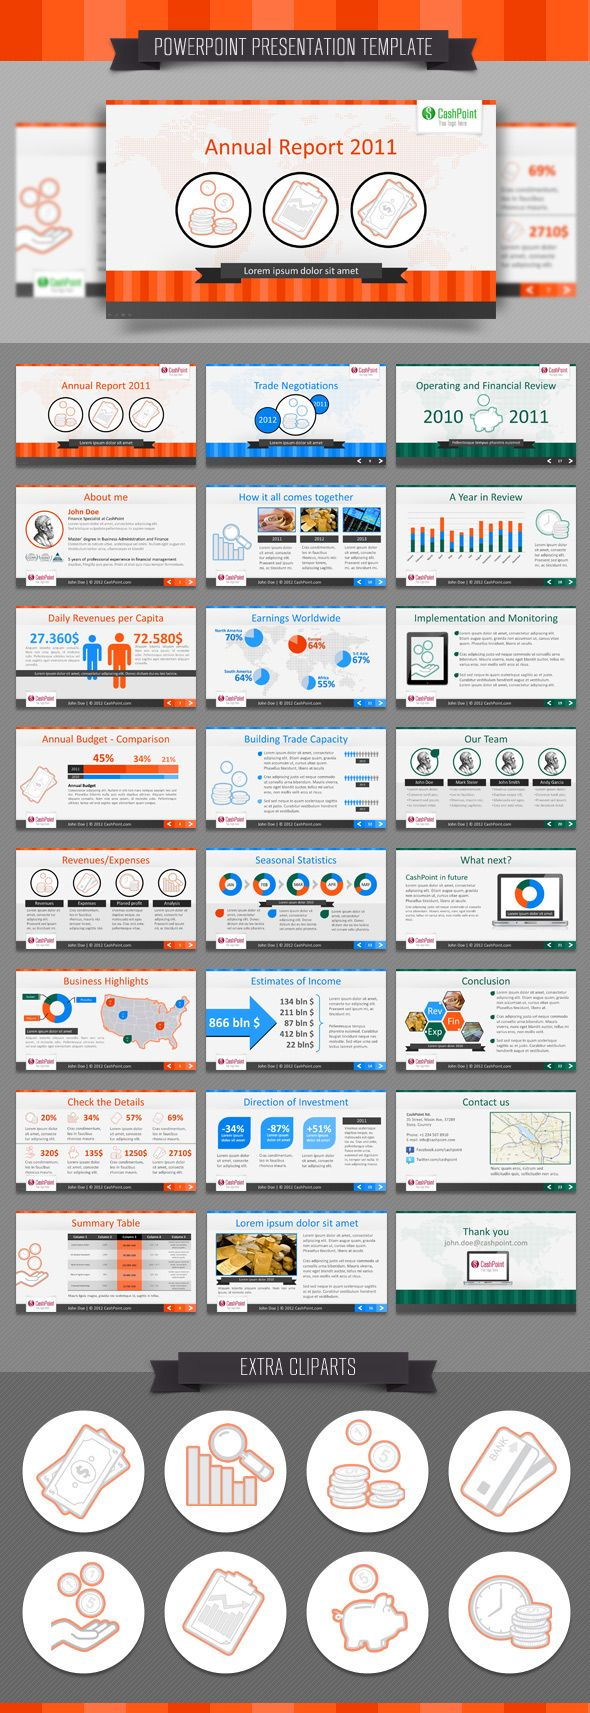 Best 25 ppt file ideas on pinterest powerpoint presentation financial report fullhd powerpoint template graphicriver item for sale toneelgroepblik Images